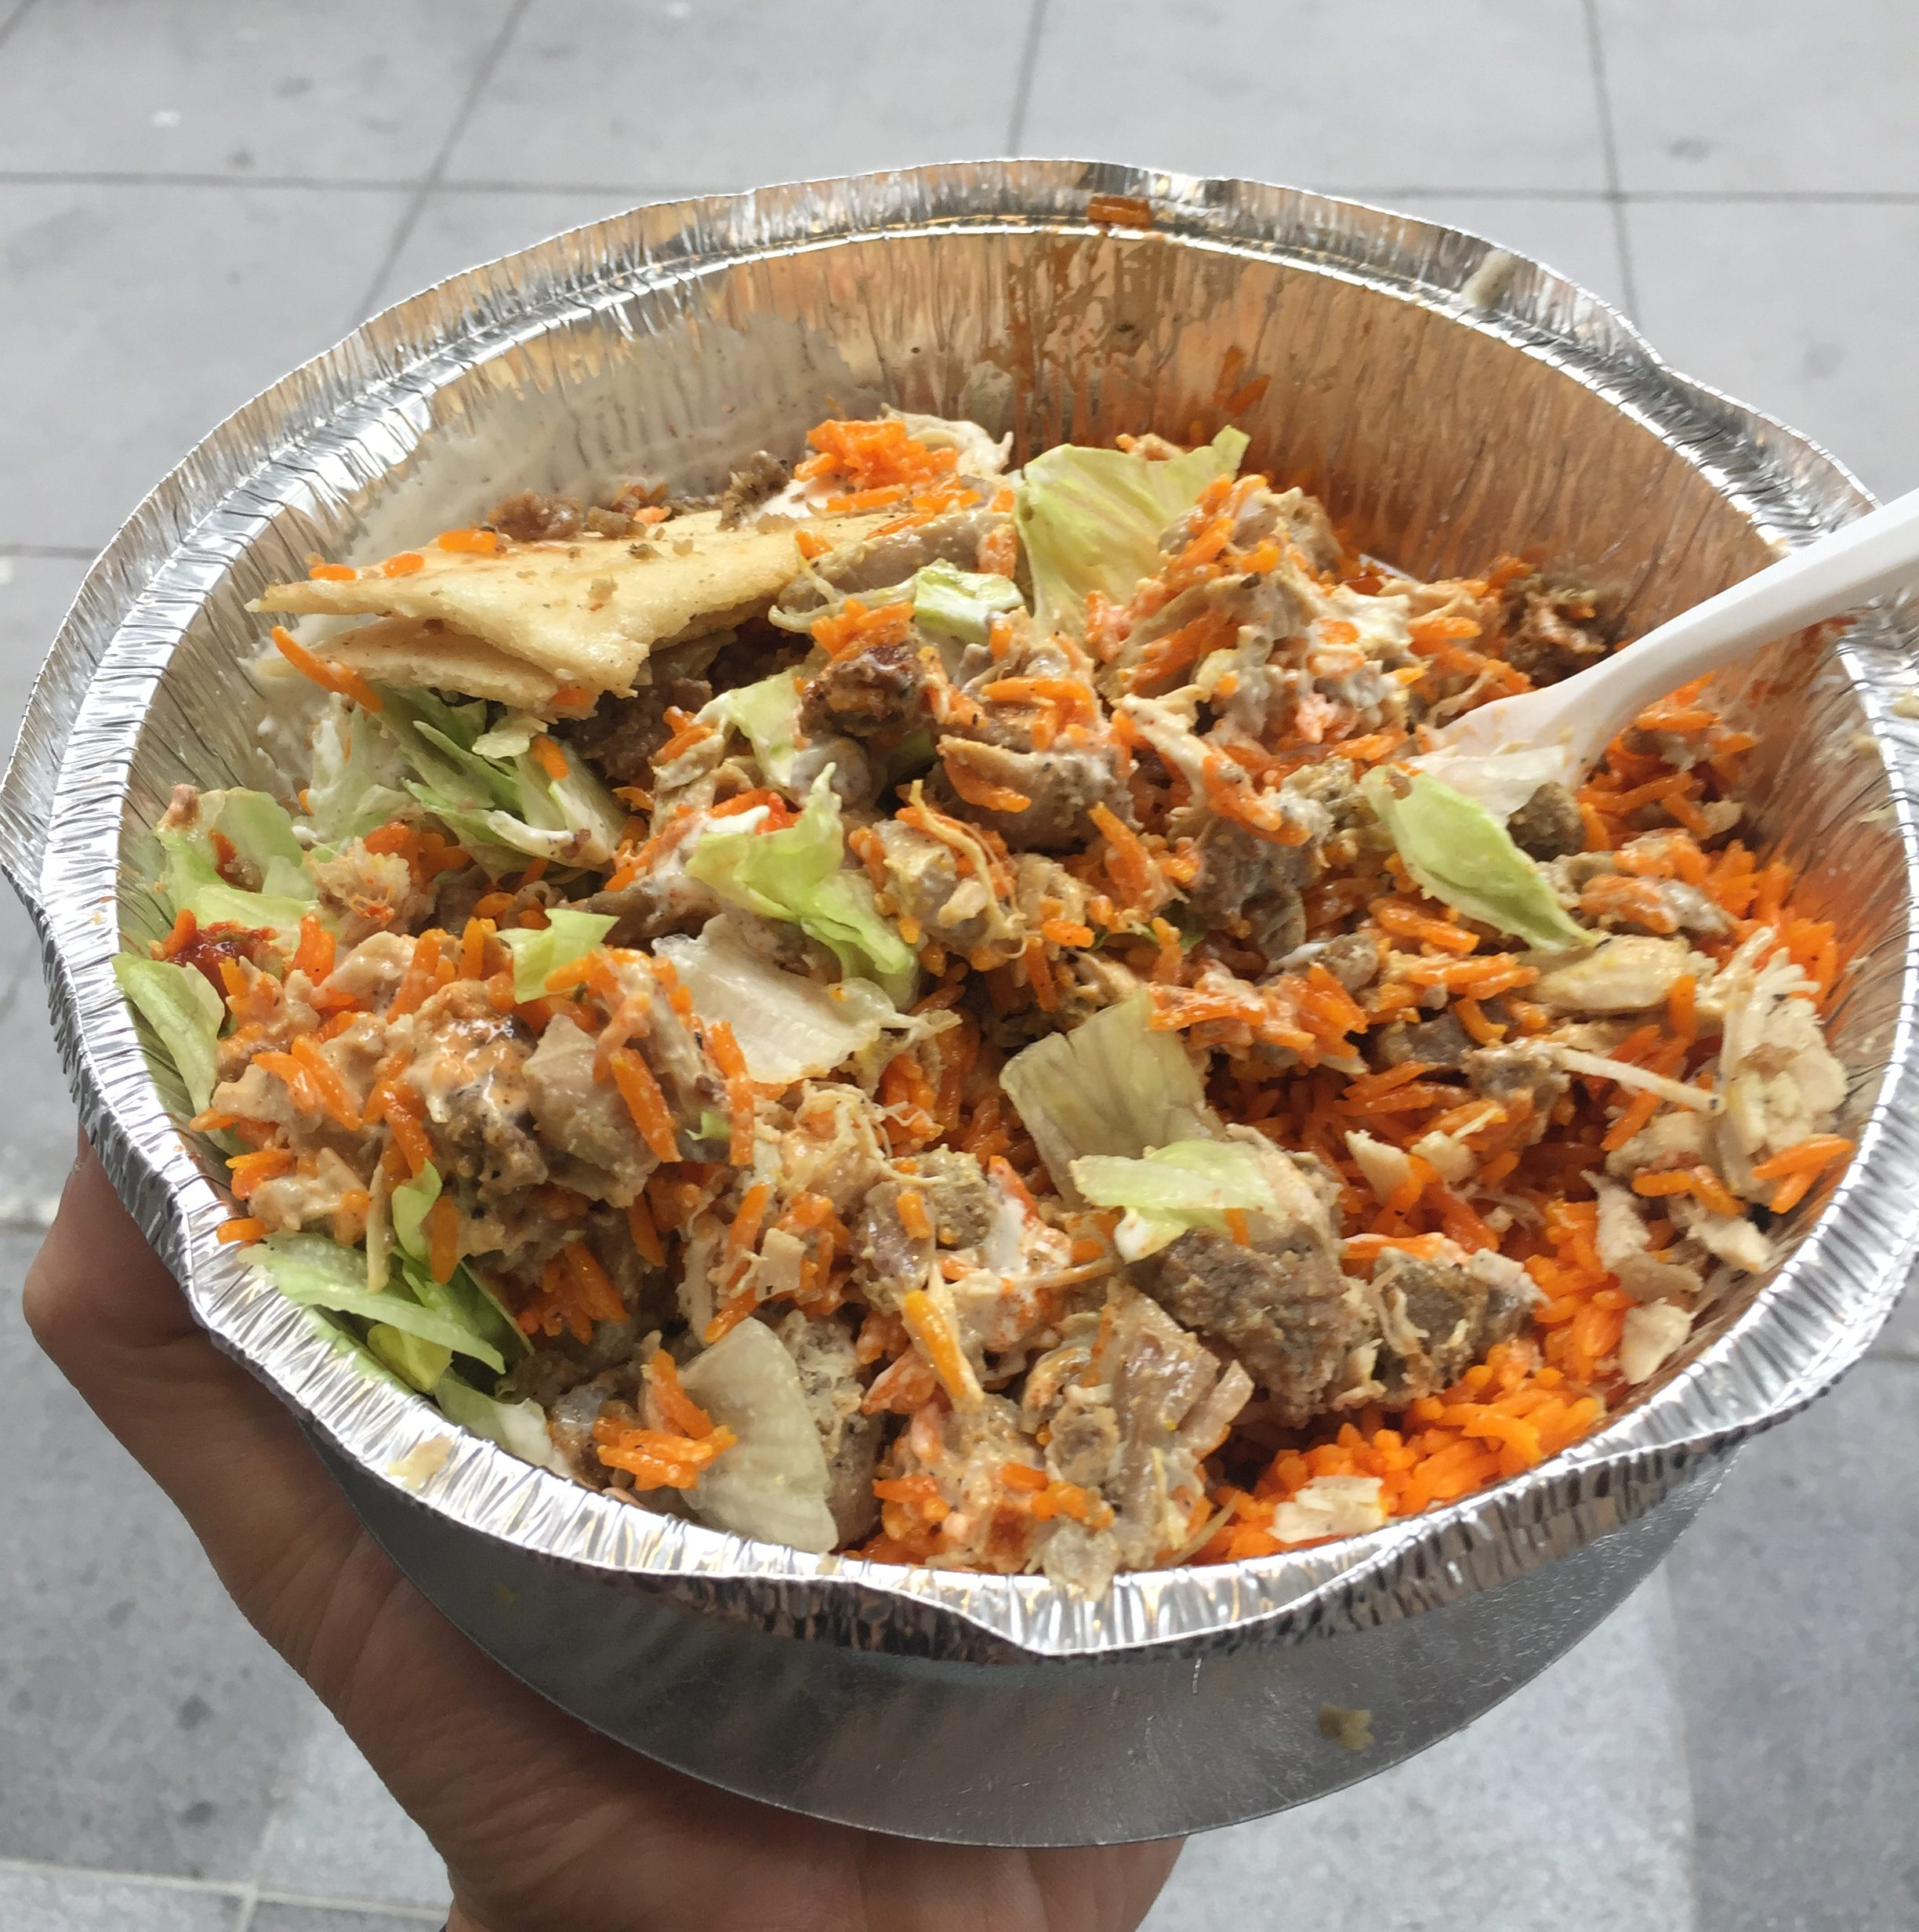 Park Hyatt New York Halal Guys